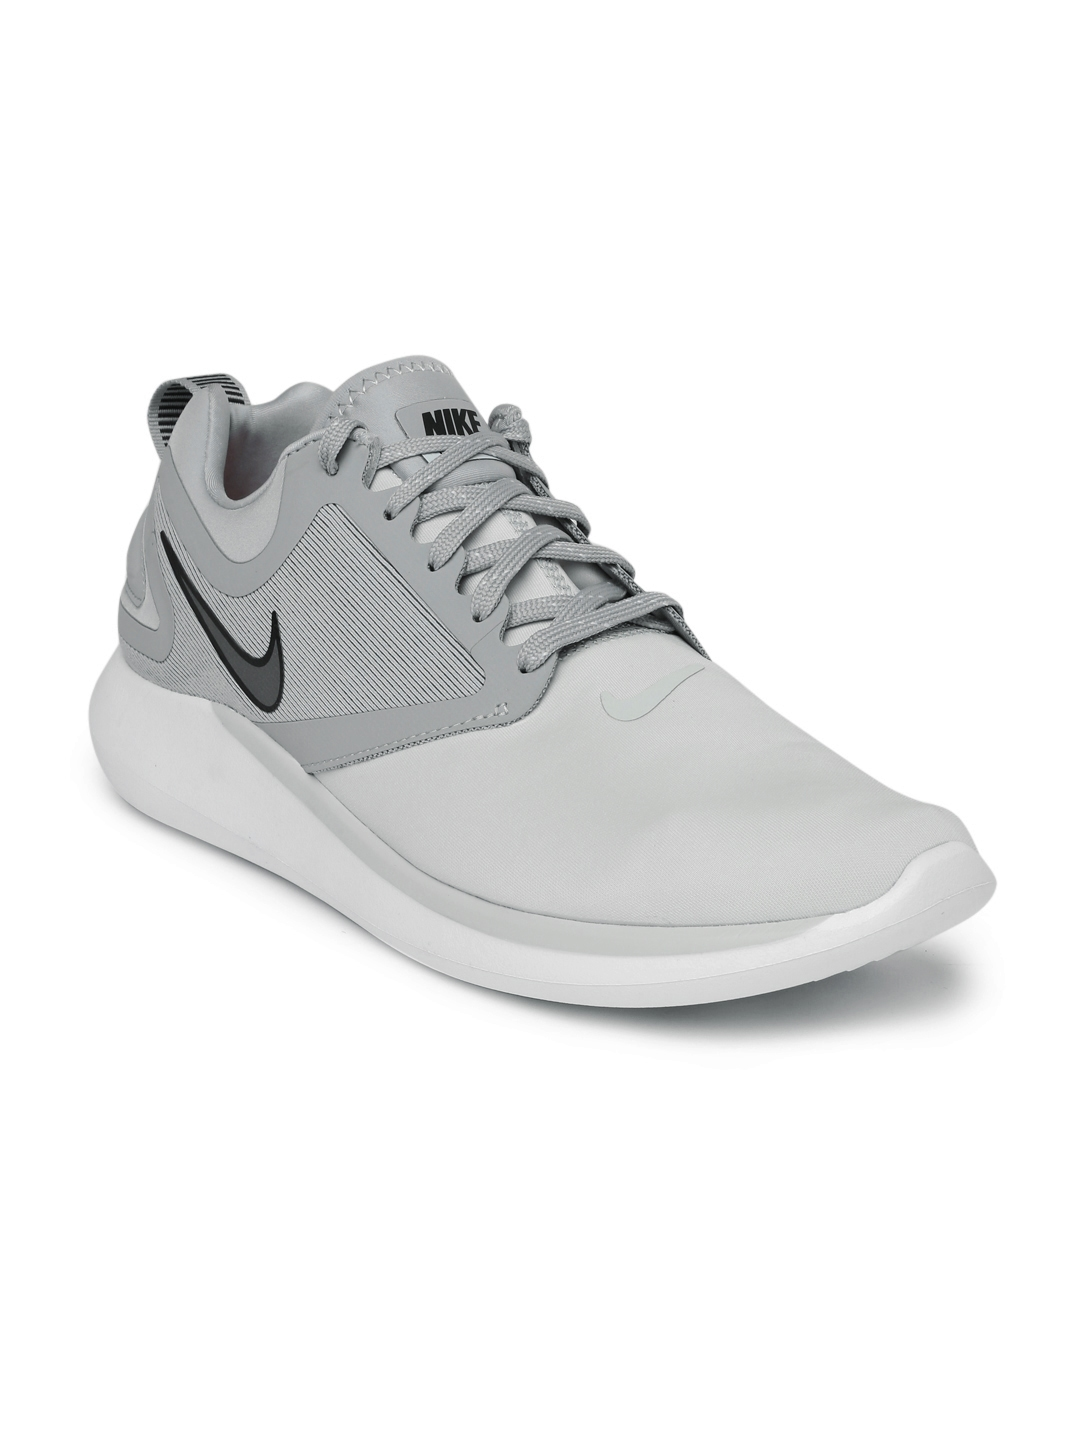 b2c70bcfb12c 11503483819165-Nike-Men-Grey-Running-Shoes-8271503483819049-1.jpg